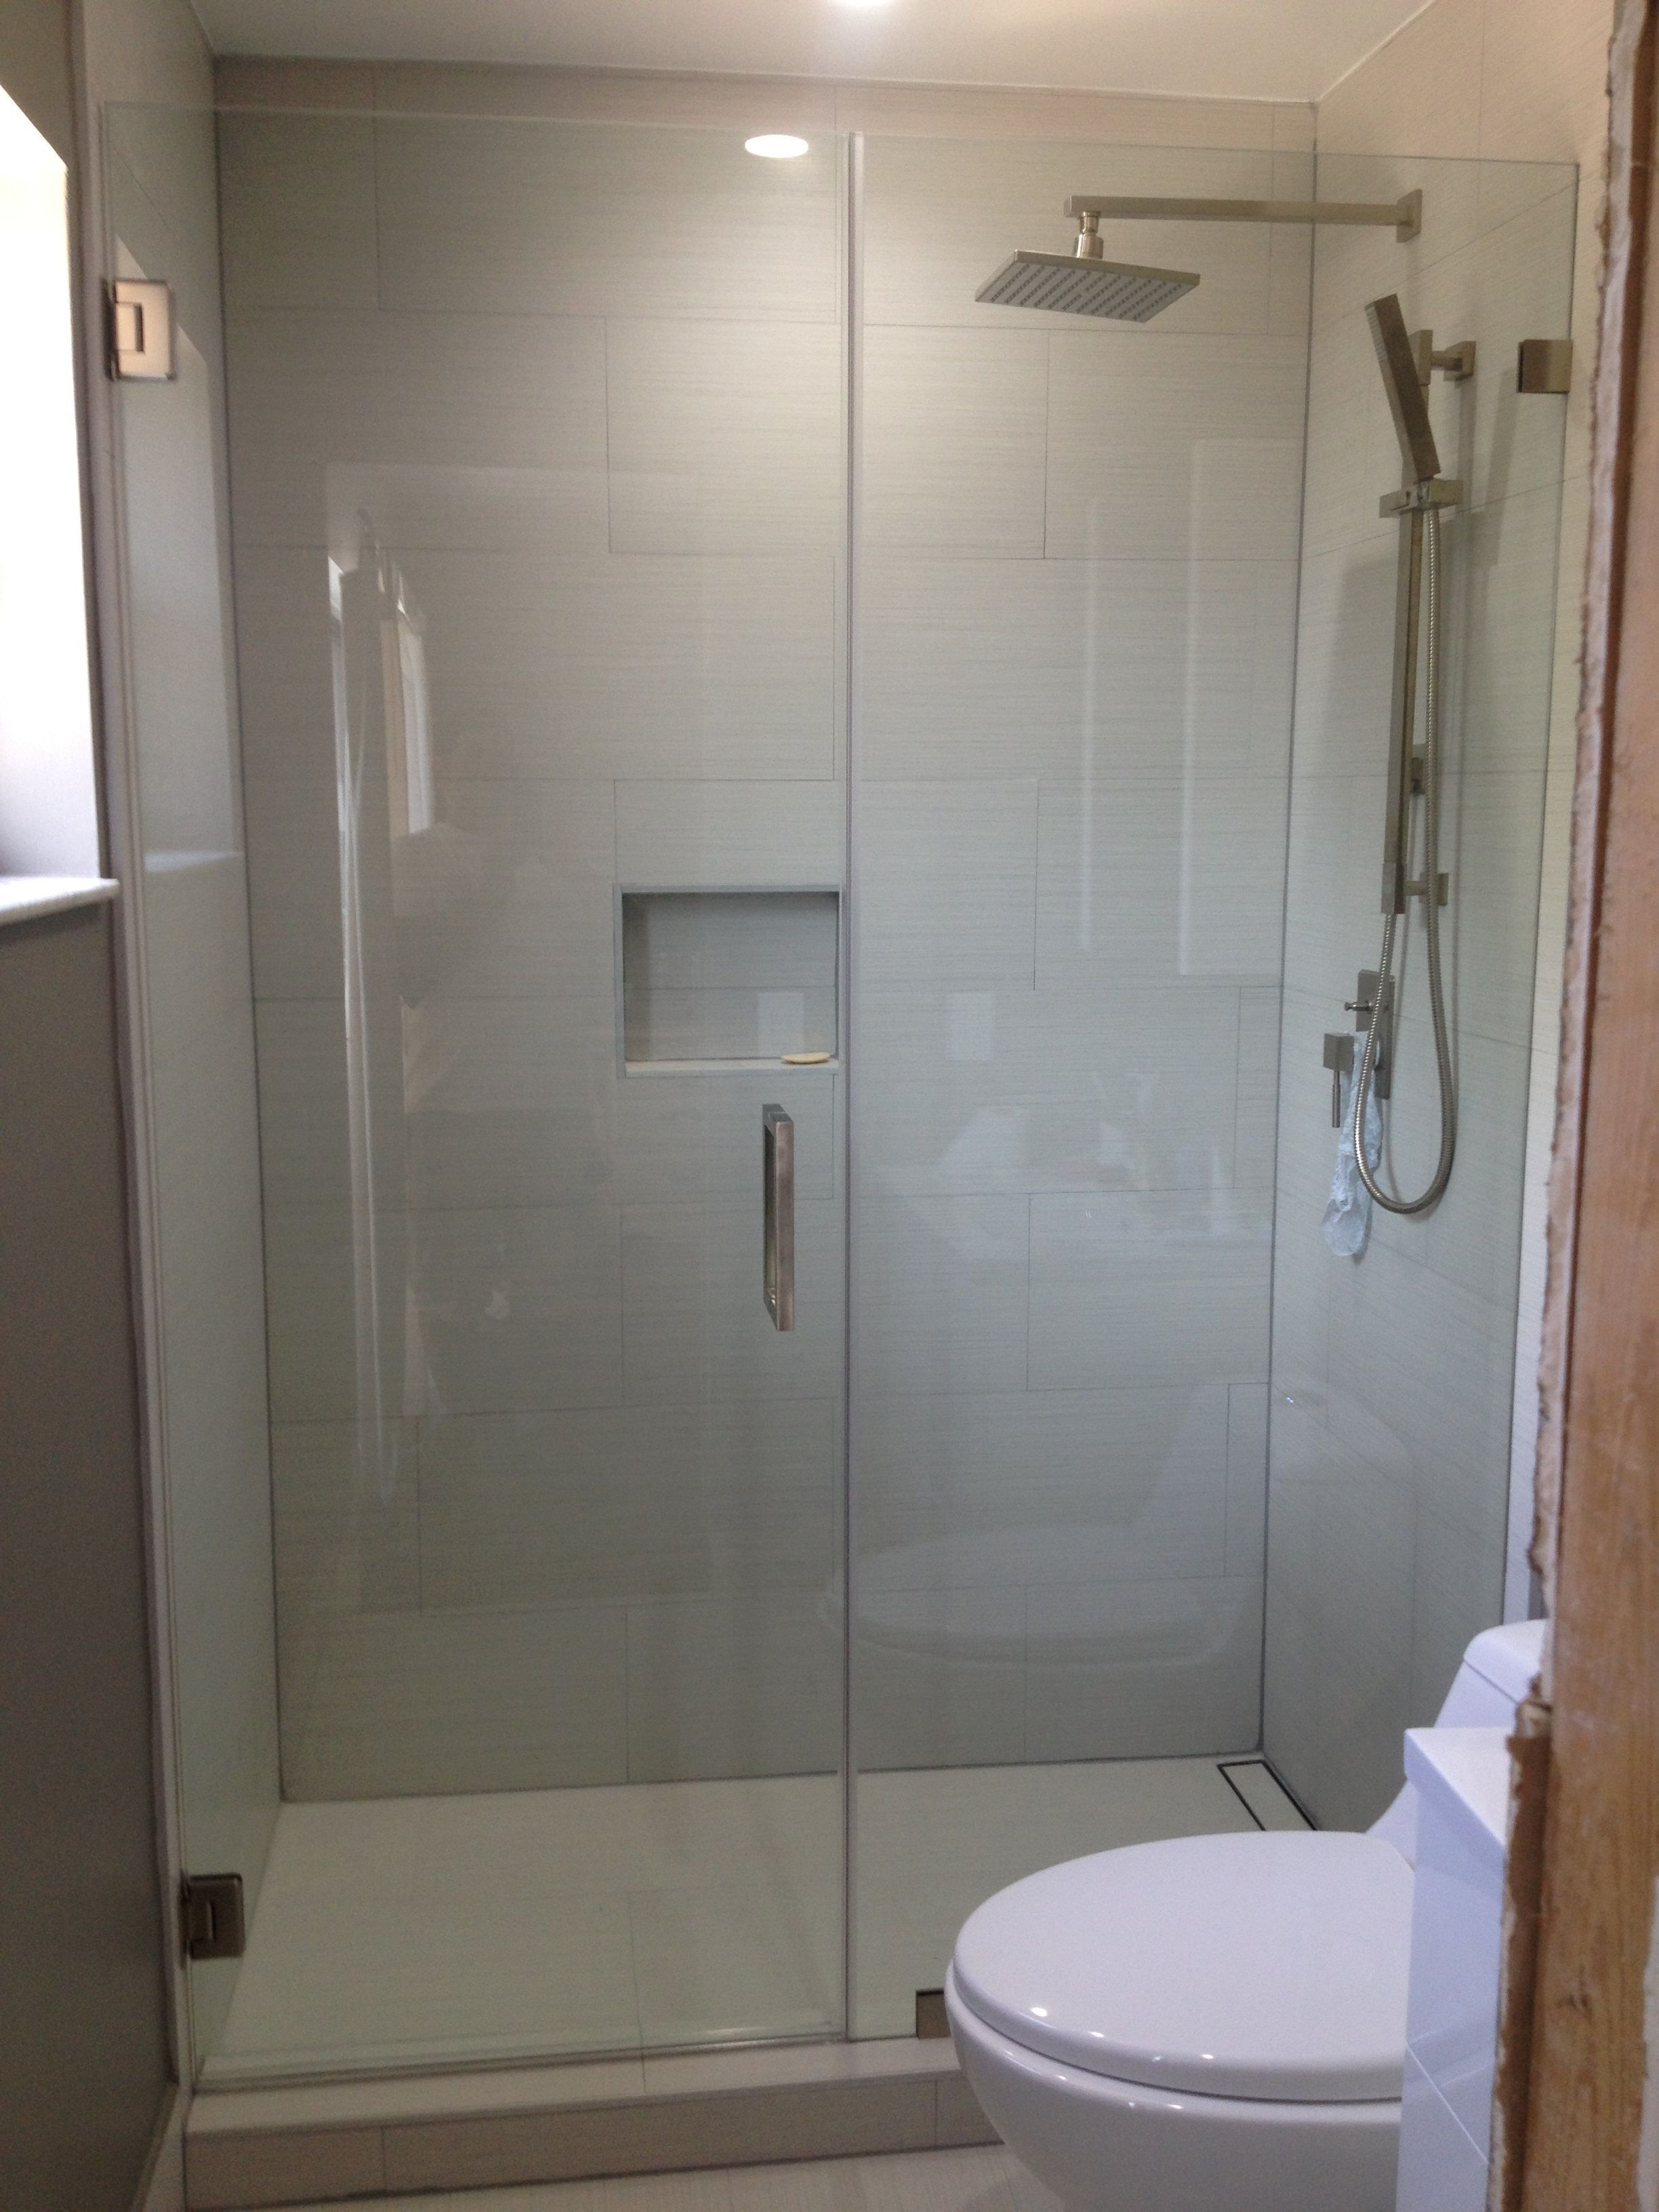 Borderless Glass Shower Door Shower Doors Shower Sliding Glass Door Glass Shower Doors